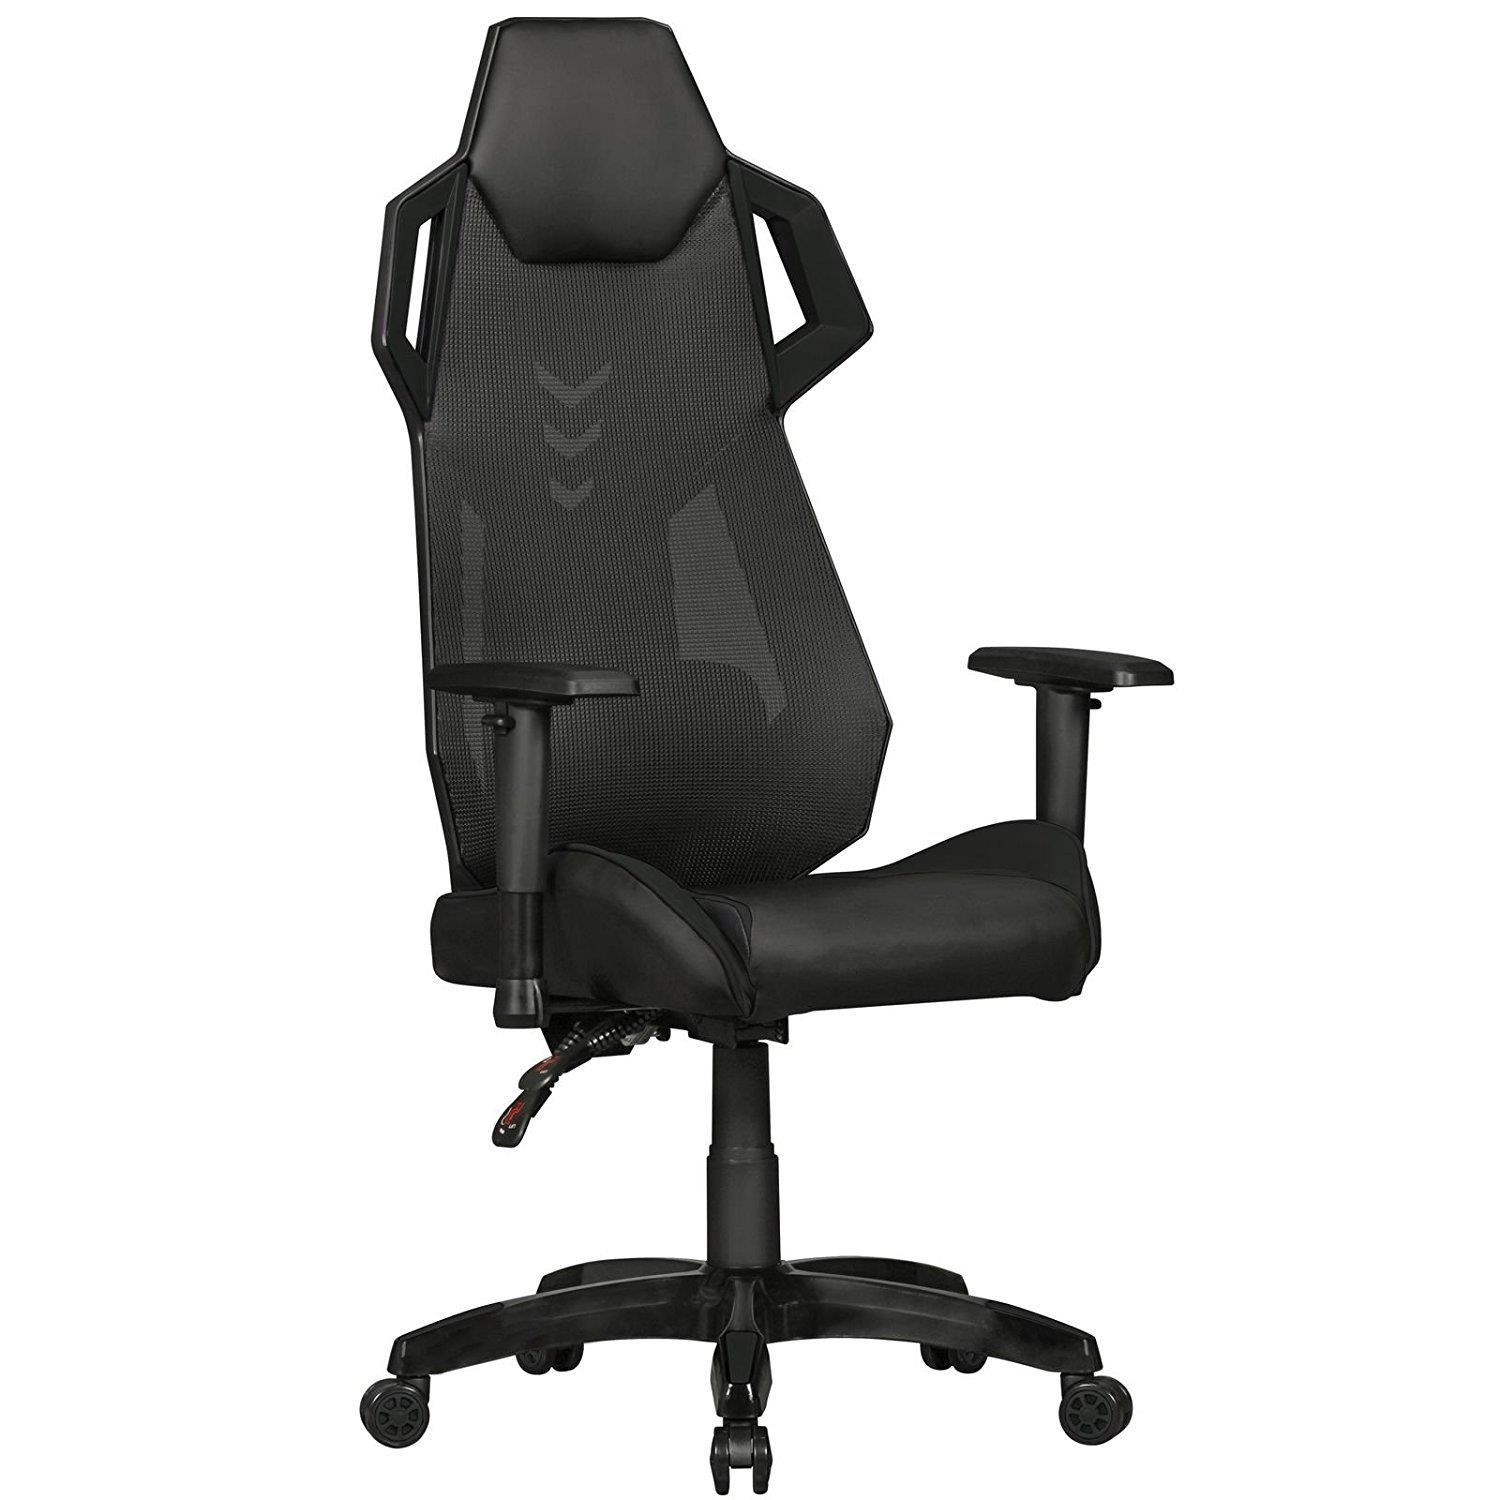 Chaise Gaming GAMEPAK, Ergonomique, Support Lombaire, Cuir et Maille, Noir